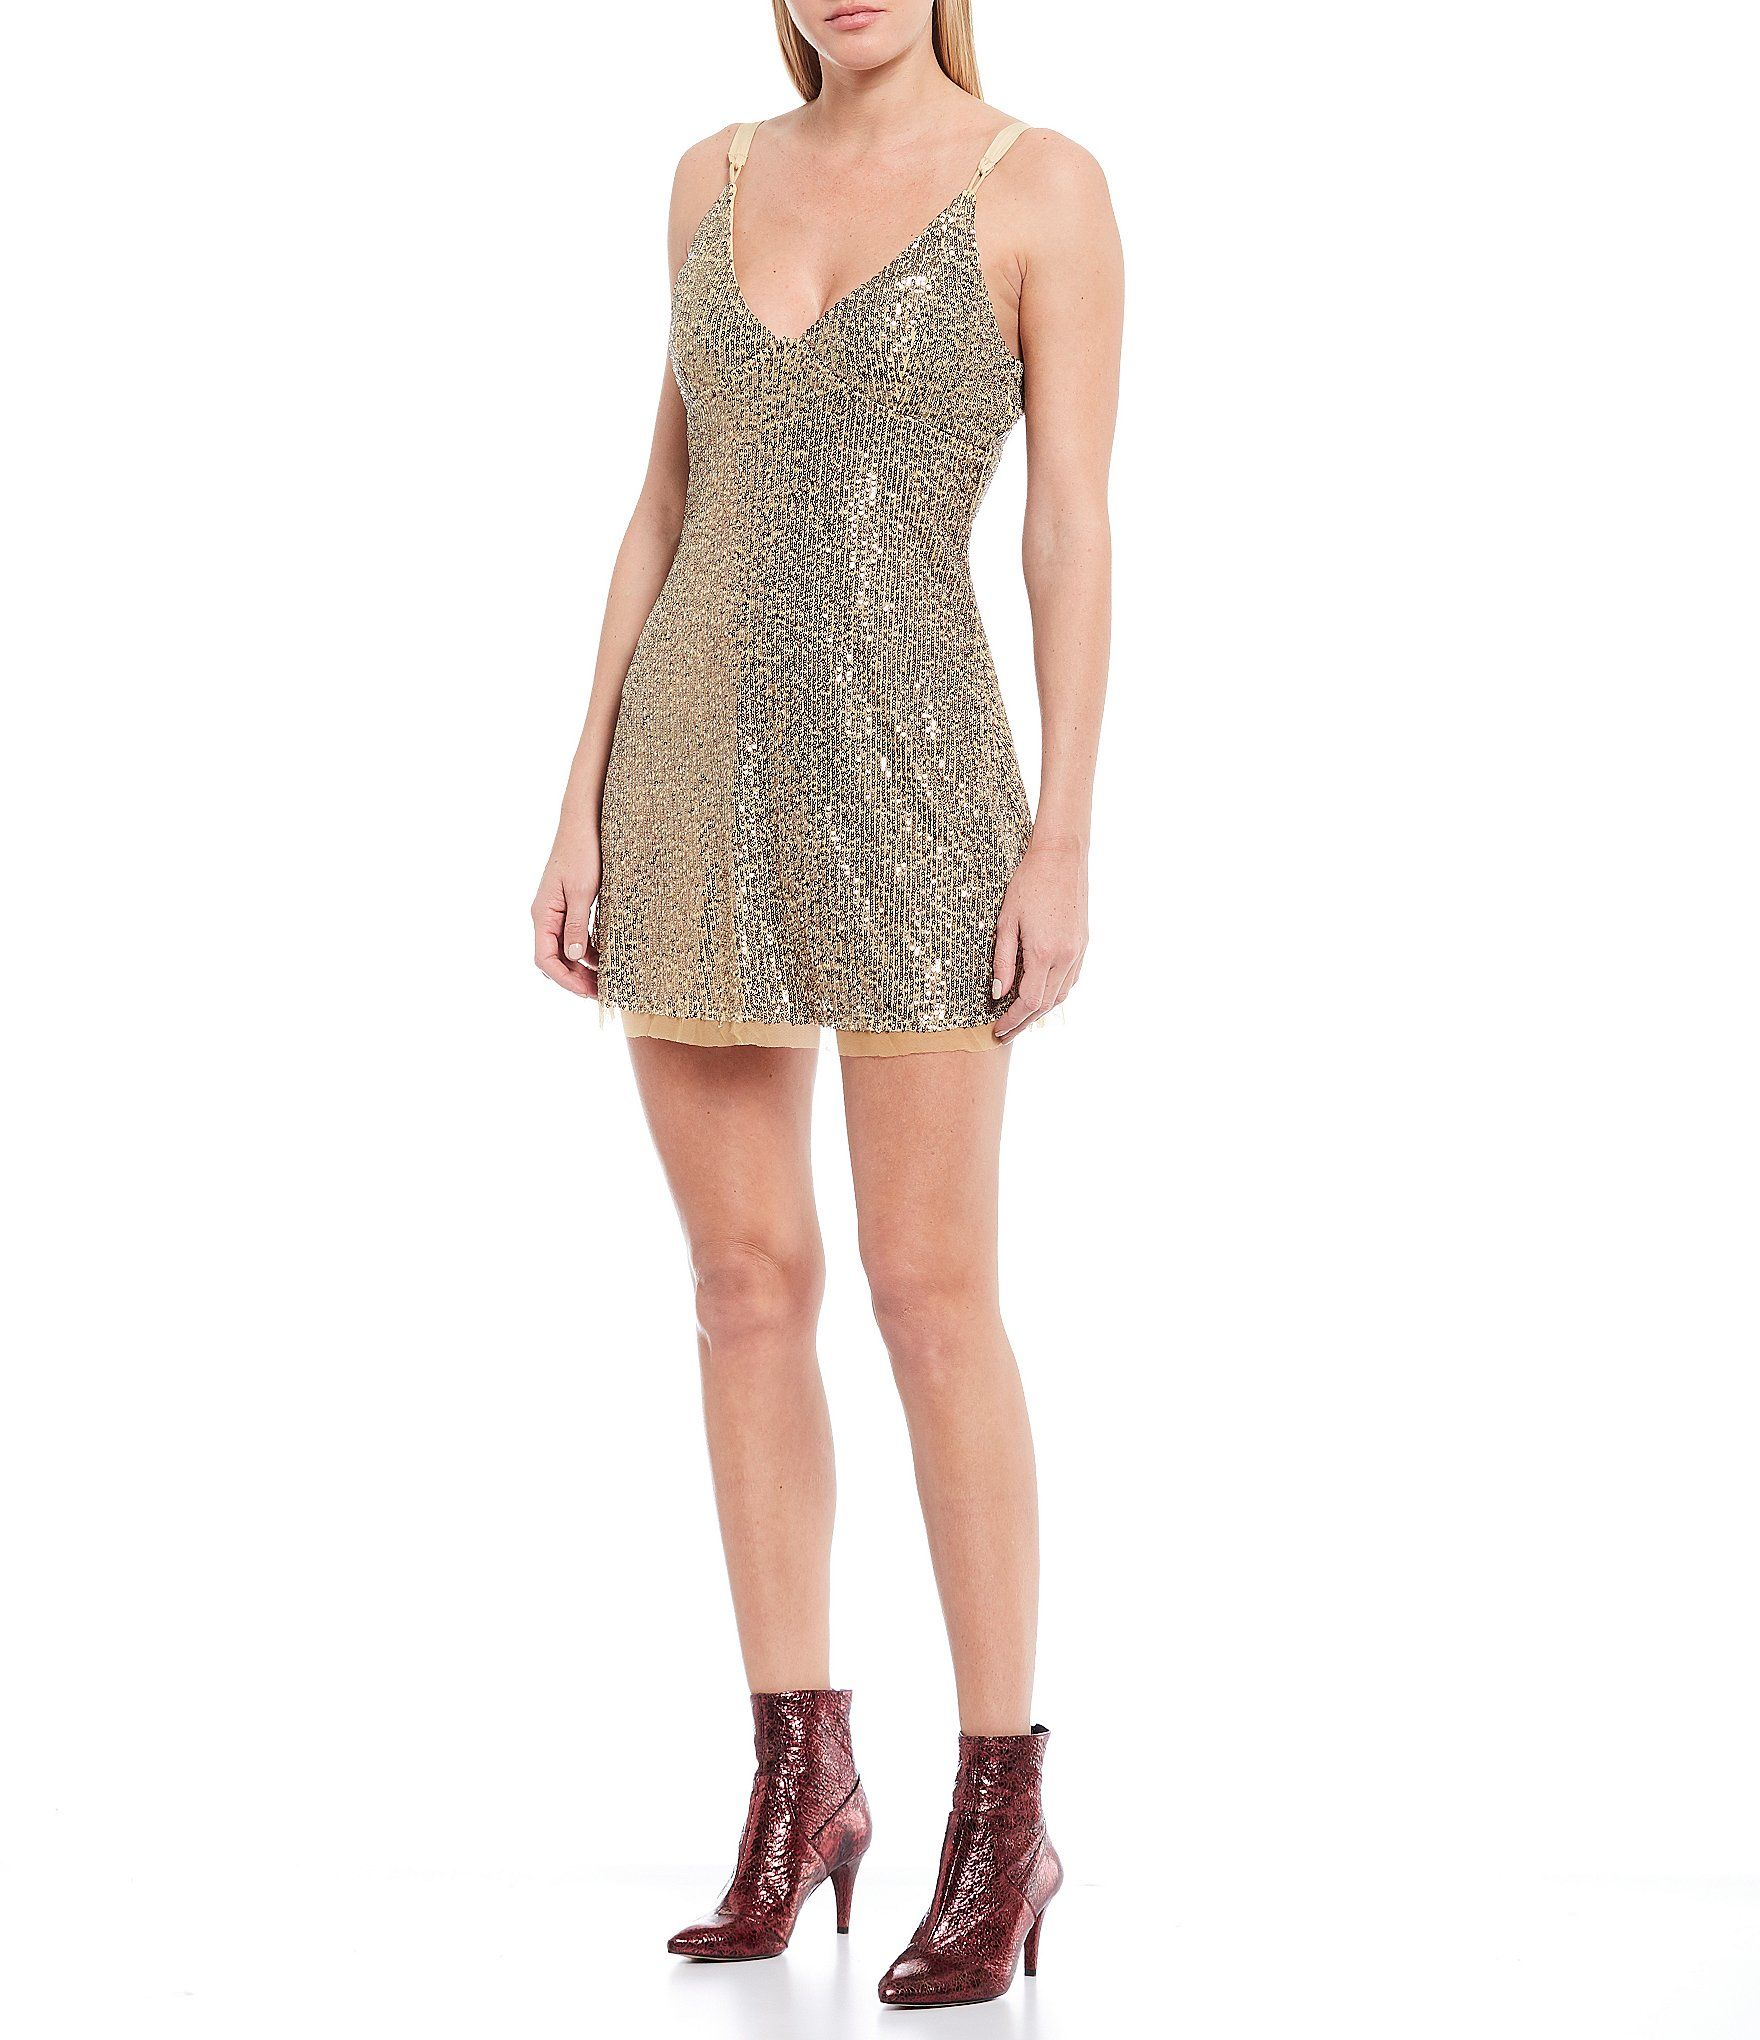 Gold Rush Allover Metallic Sequin Mini Dress In 2020 Sequin Mini Dress Dresses Where To Buy Clothes